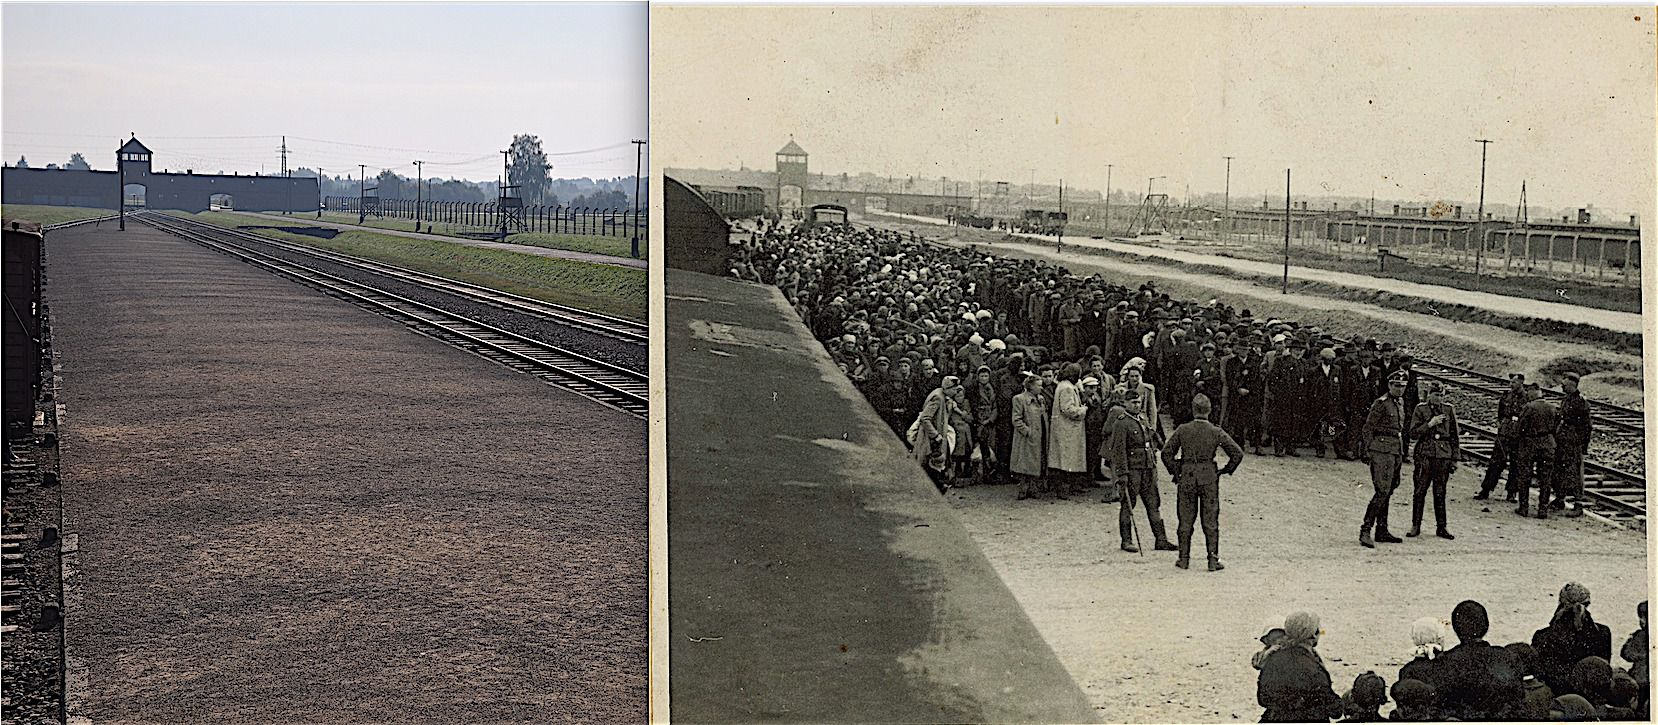 Gateway to Death: The ramp at Auschwitz II-Birkenau where SS doctors made selections for extermination among the deported Jews. As it exists today at the Auschwitz Memorial, and an SS picture showing a new arrival of Hungarian Jews in May 1944.